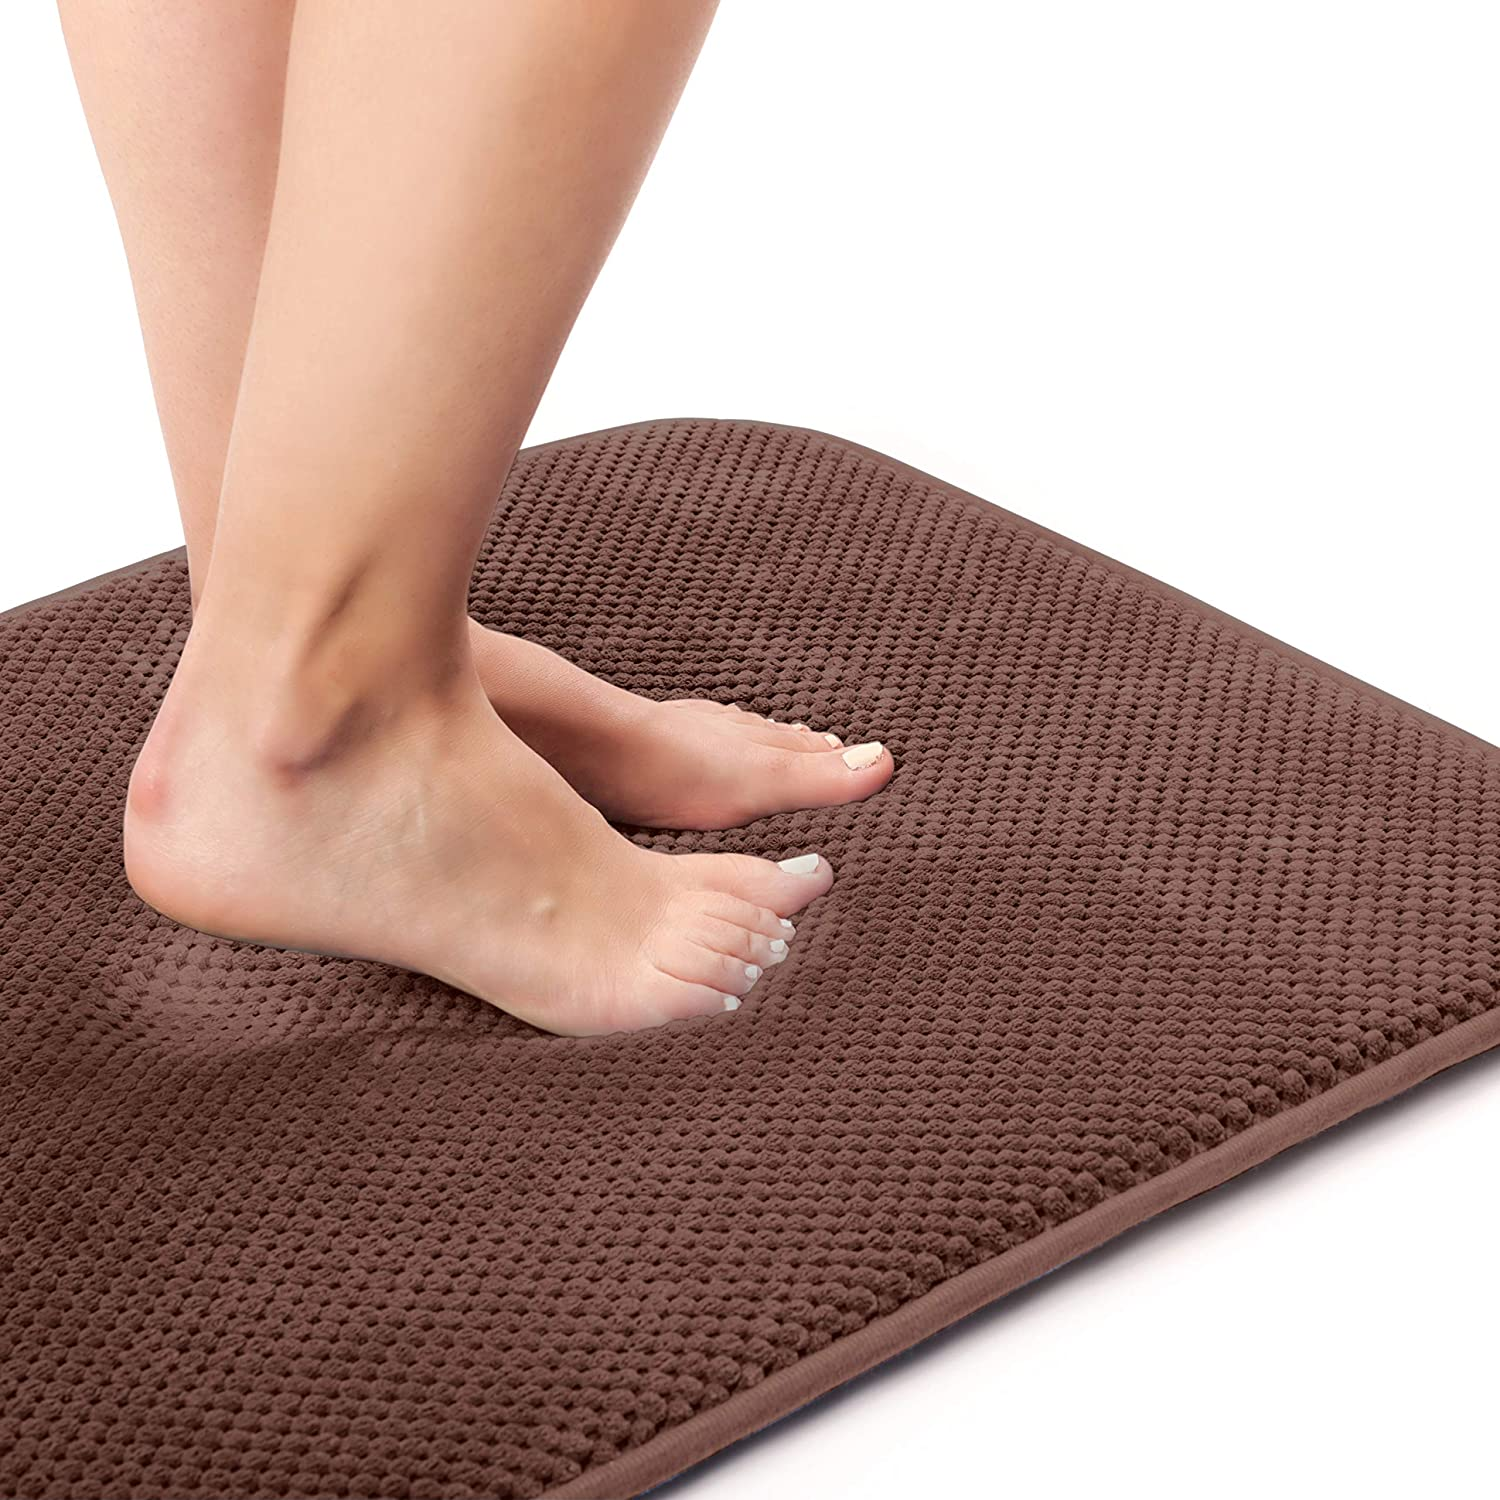 Kingole Absorbent Memory Foam Bath Mat, Non Slip and Cozy Microfiber Bathroom Floor Mat, Thick and Quick Drying (20 x 32 inches, Brown)